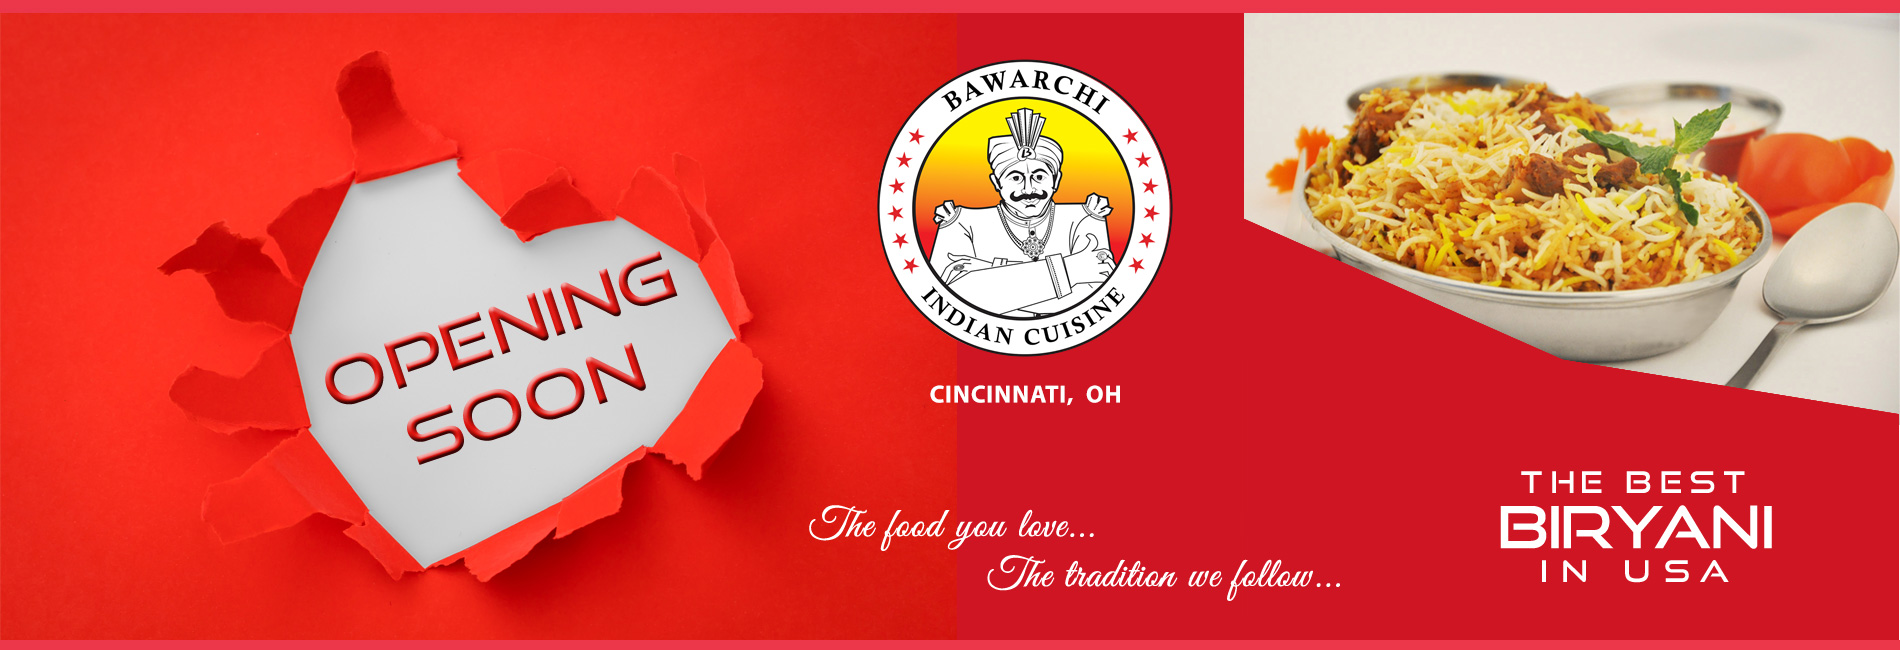 Bawarchi Cleveland - Opening Soon